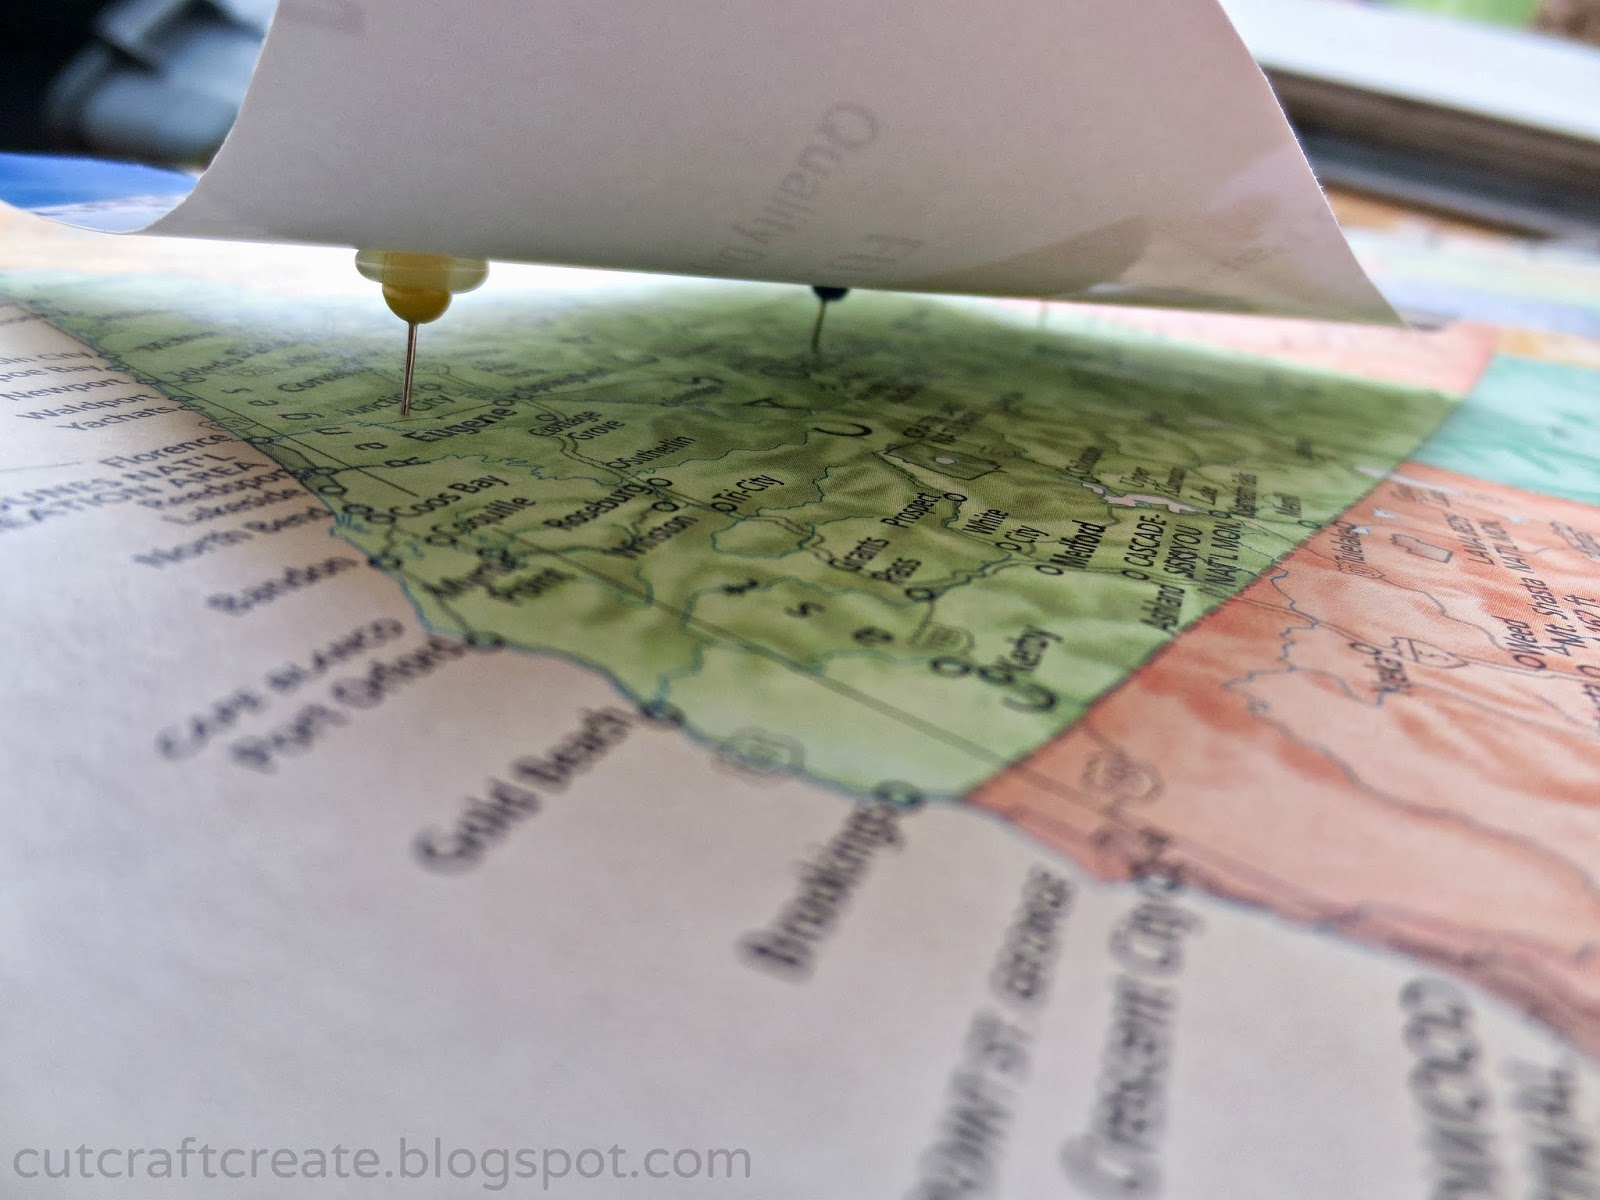 Cut Craft Create Personalized Photo Map for our Paper Anniversary – Personalized Travel Map With Pins